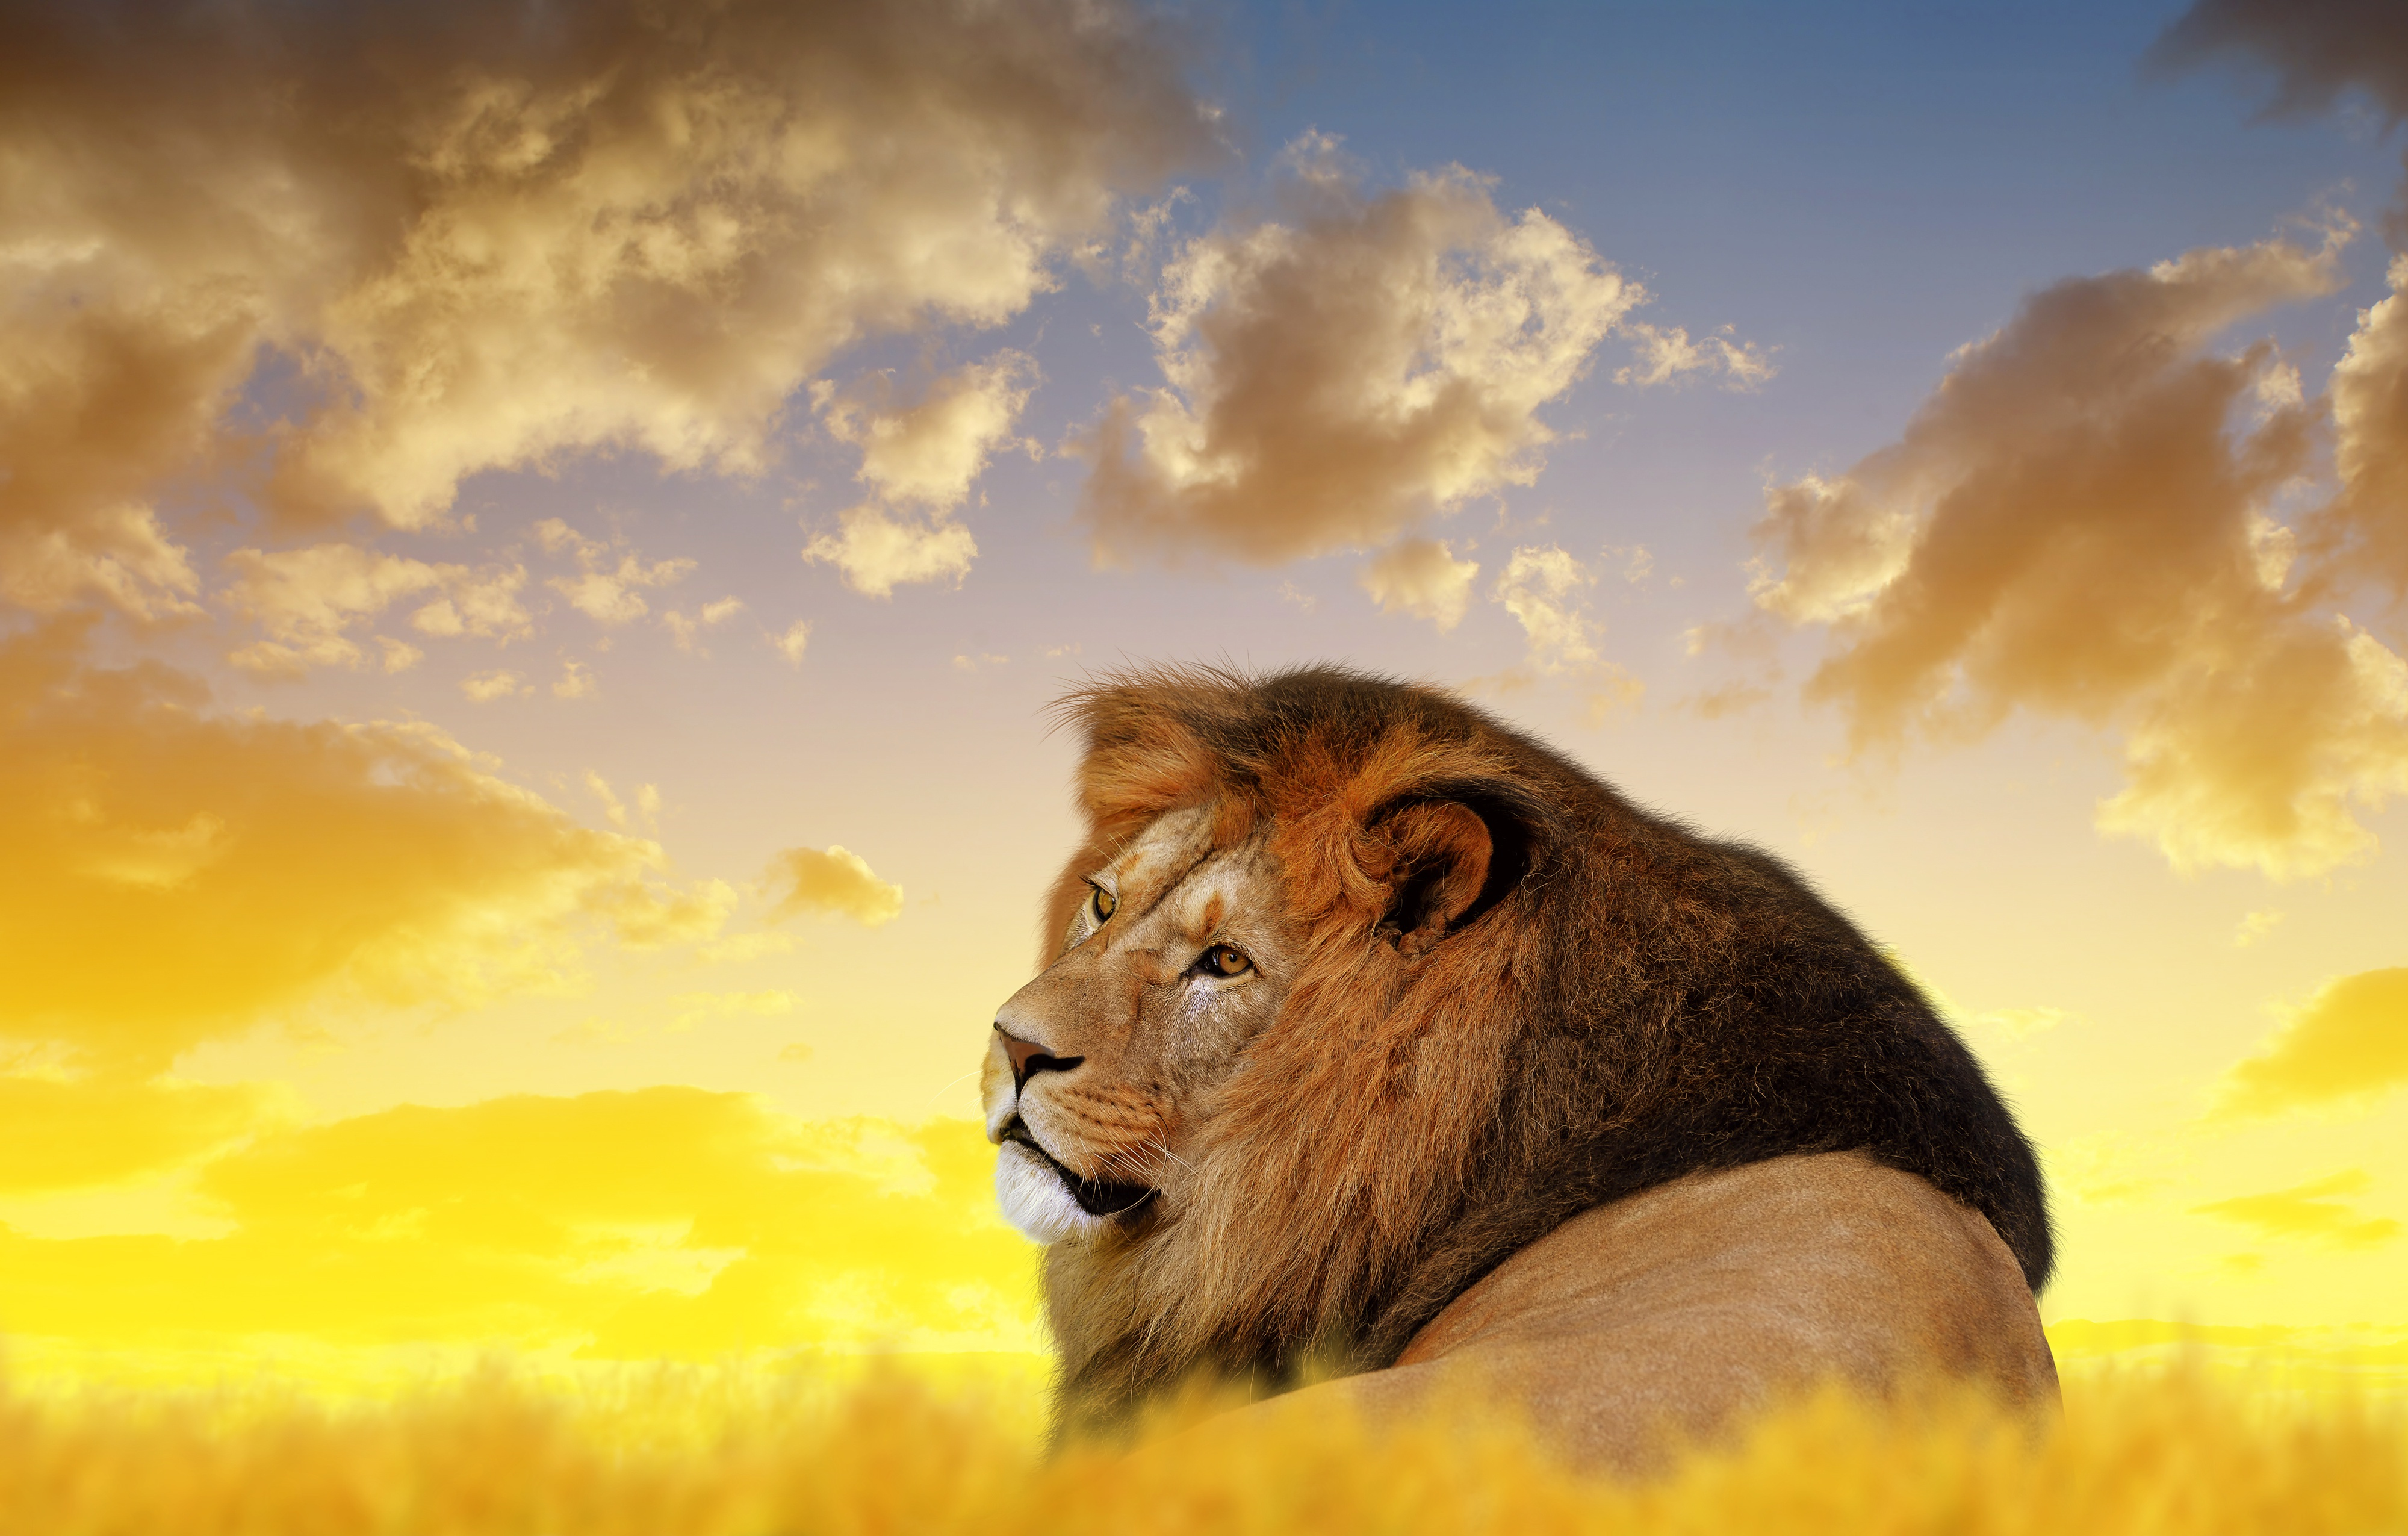 Lion Ultra Hd 4k Hd Animals 4k Wallpapers Images Backgrounds